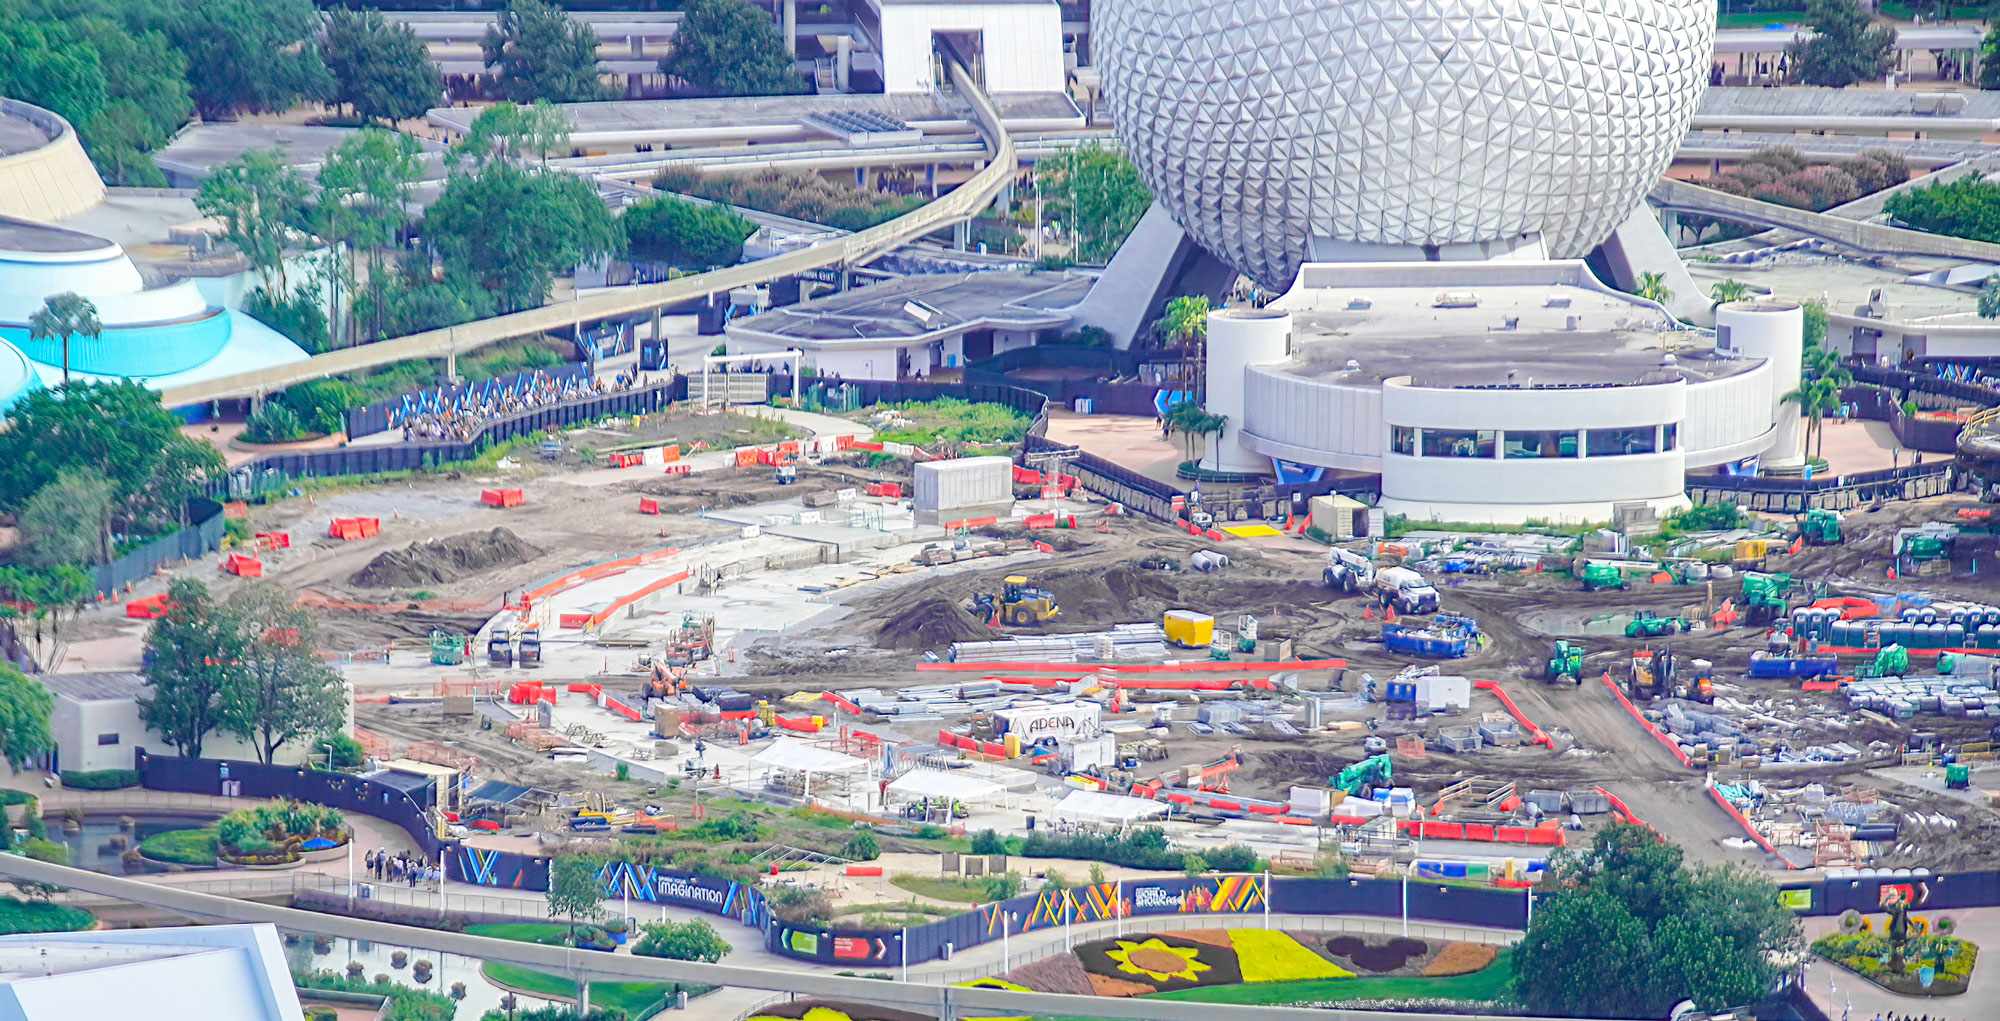 Bioreconstruct overview of Epcot future world and world celebration construction.